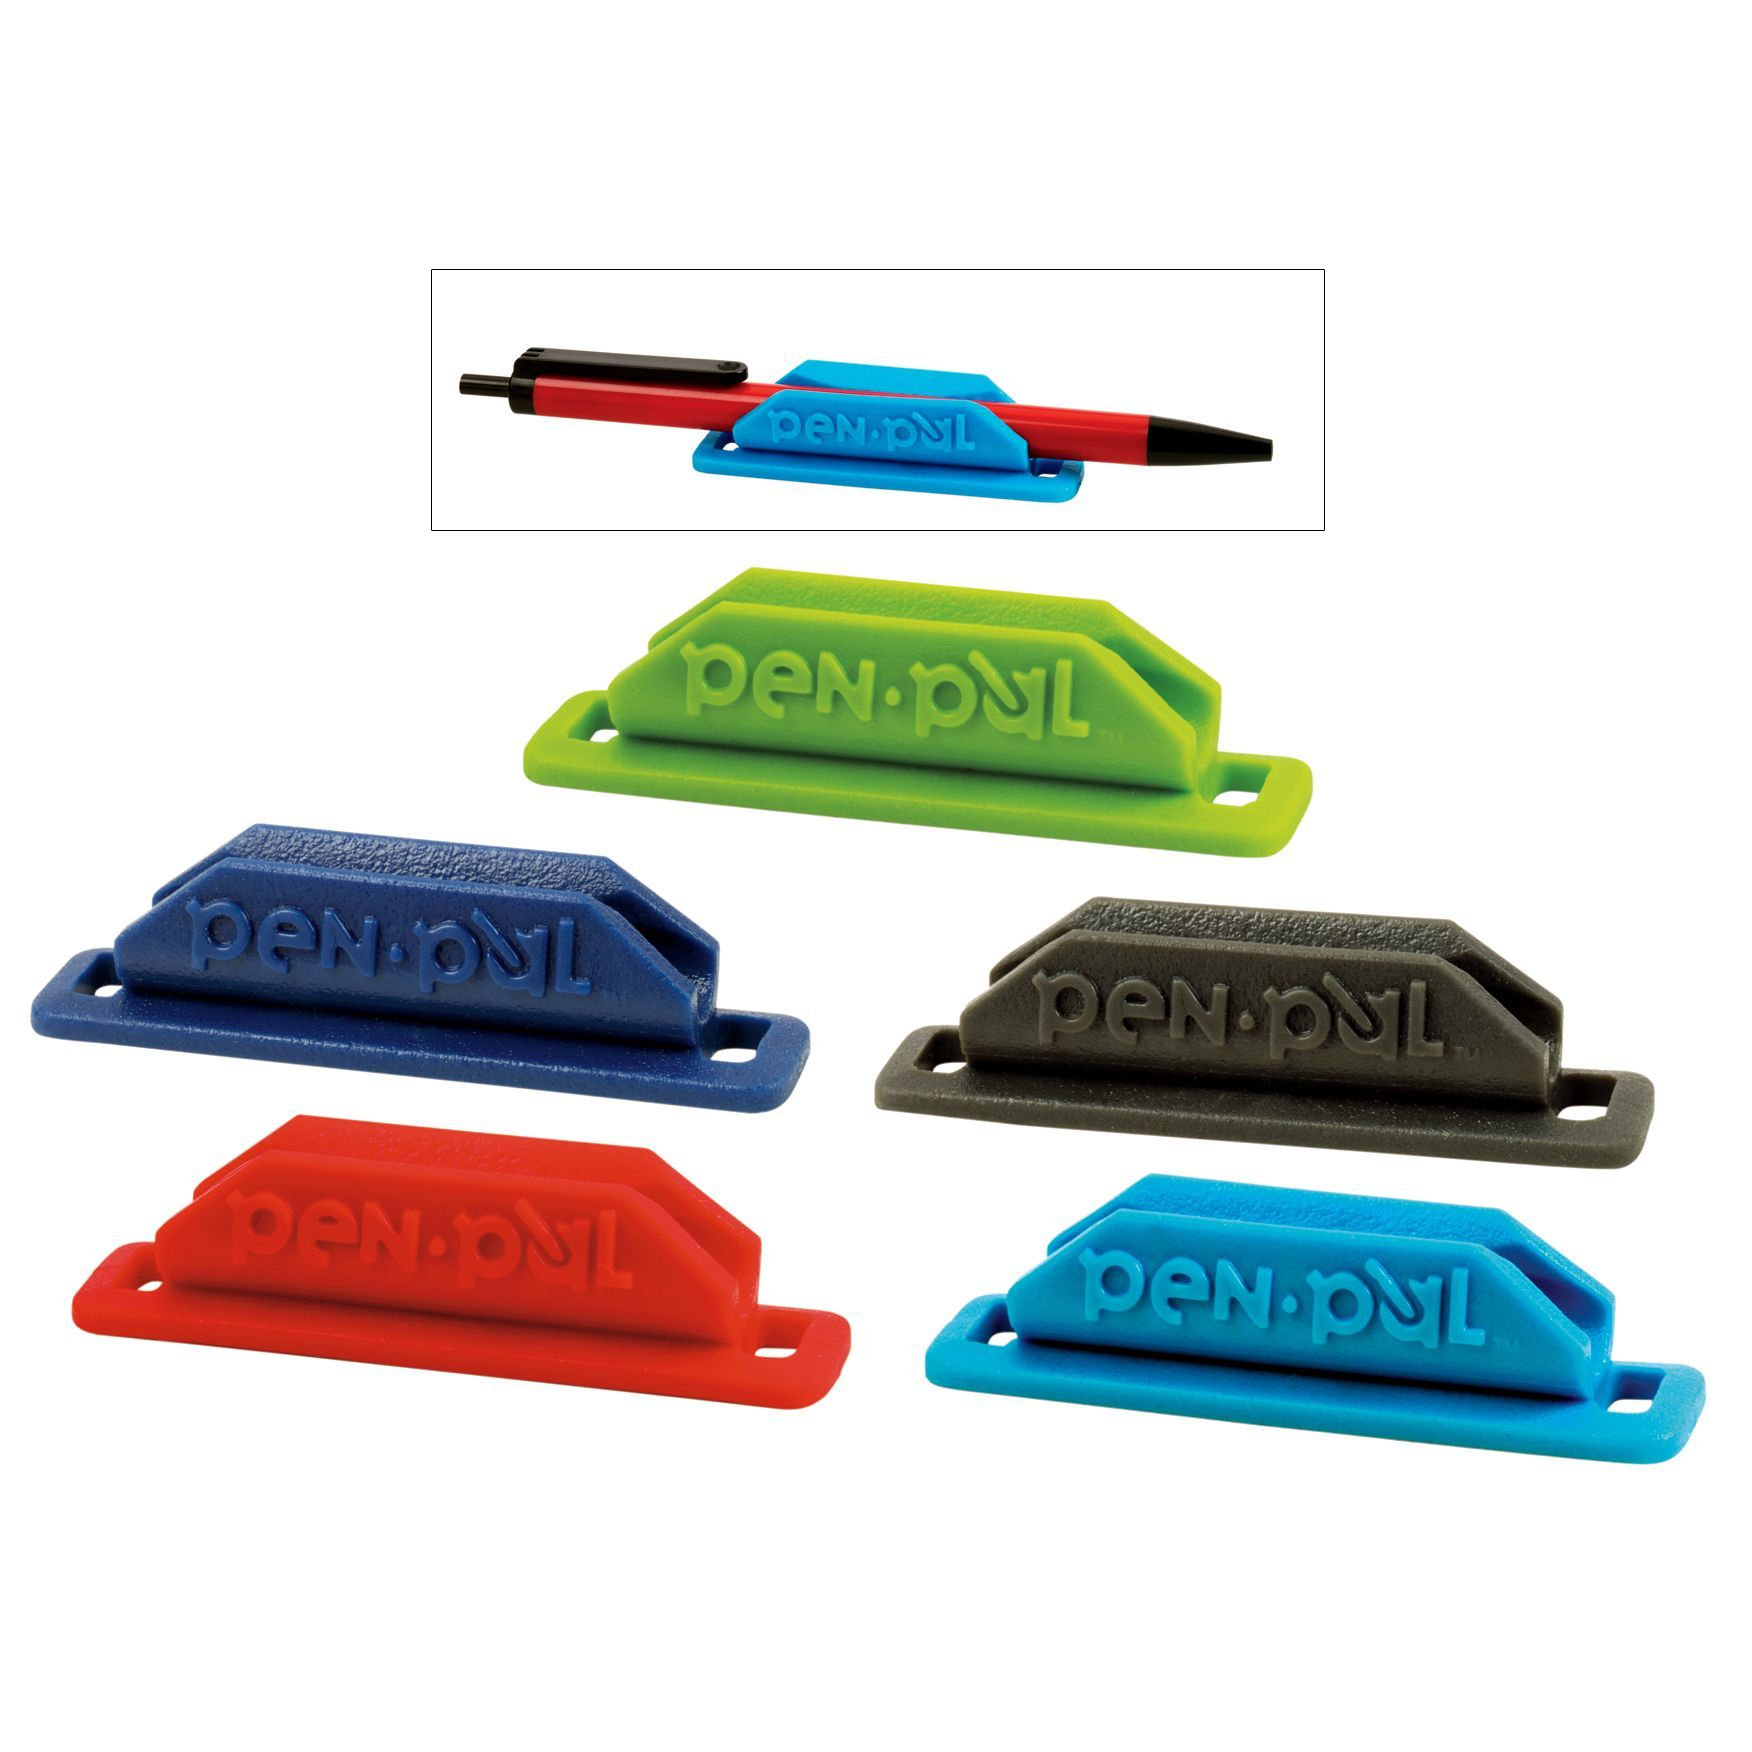 Pen Holders For Cars Tops Penpal Bp2 2 Count Assorted Pen Pal Holder Car